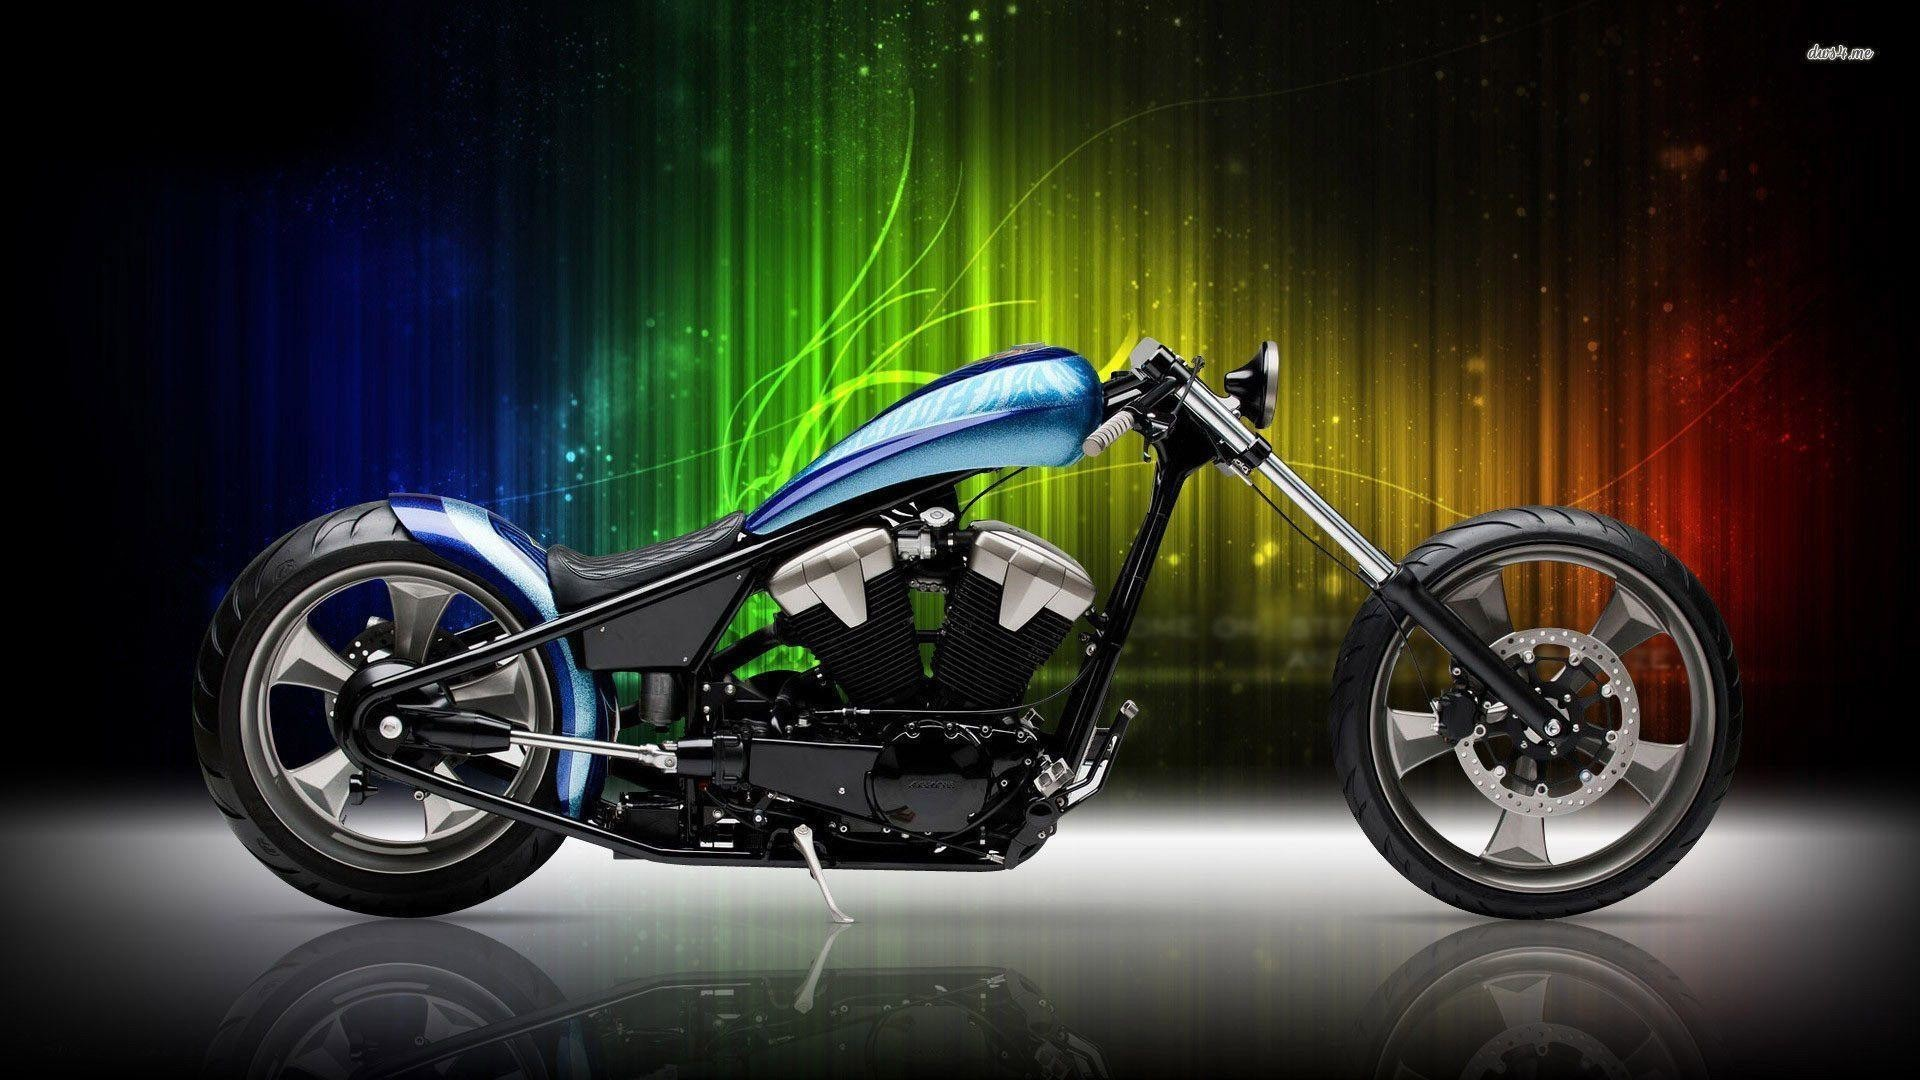 3d Yamaha Motorcycle Wallpaper Motorcycles Wallpaper Desktop 52 Images